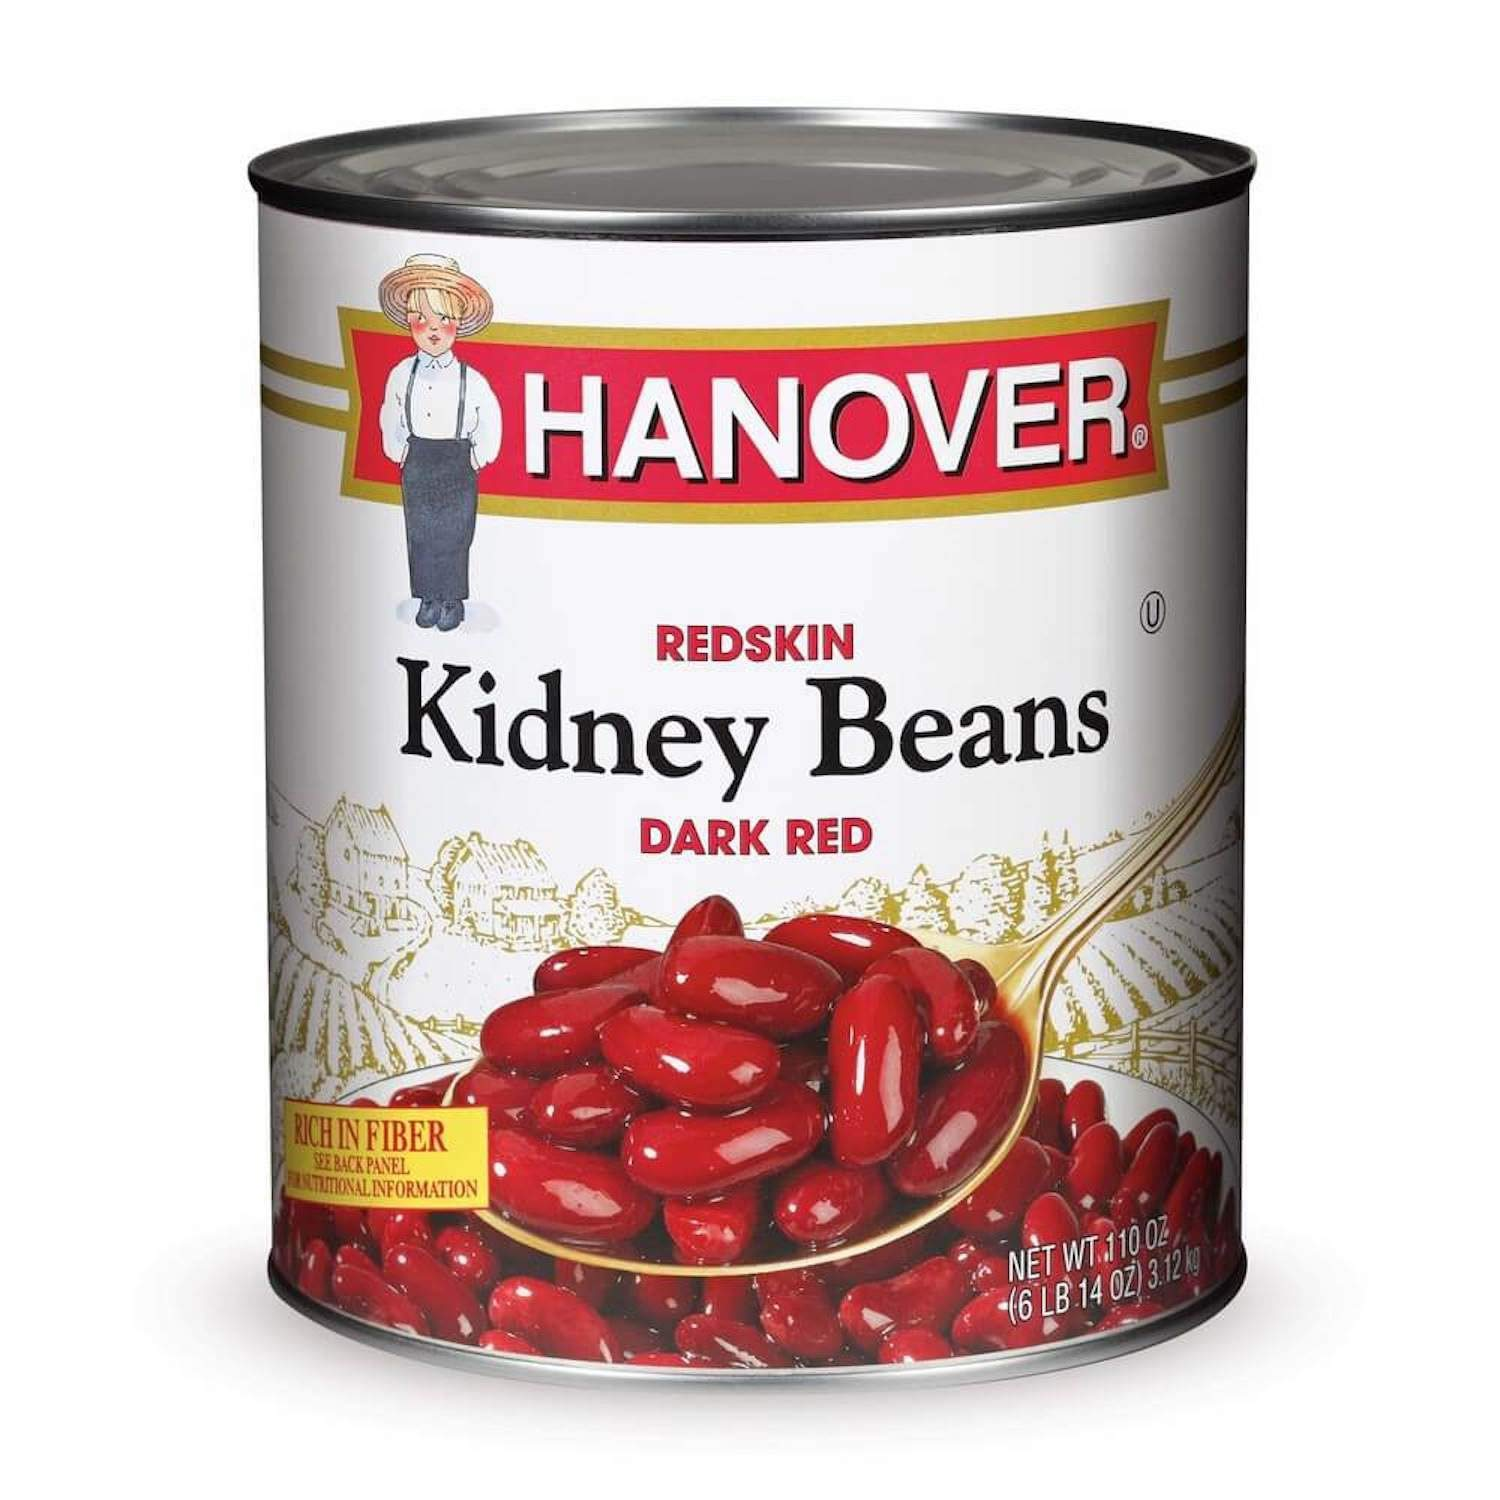 Cheap mail order specialty store Hanover Red Kidney Beans 110 pack oz. A1 3 low-pricing of